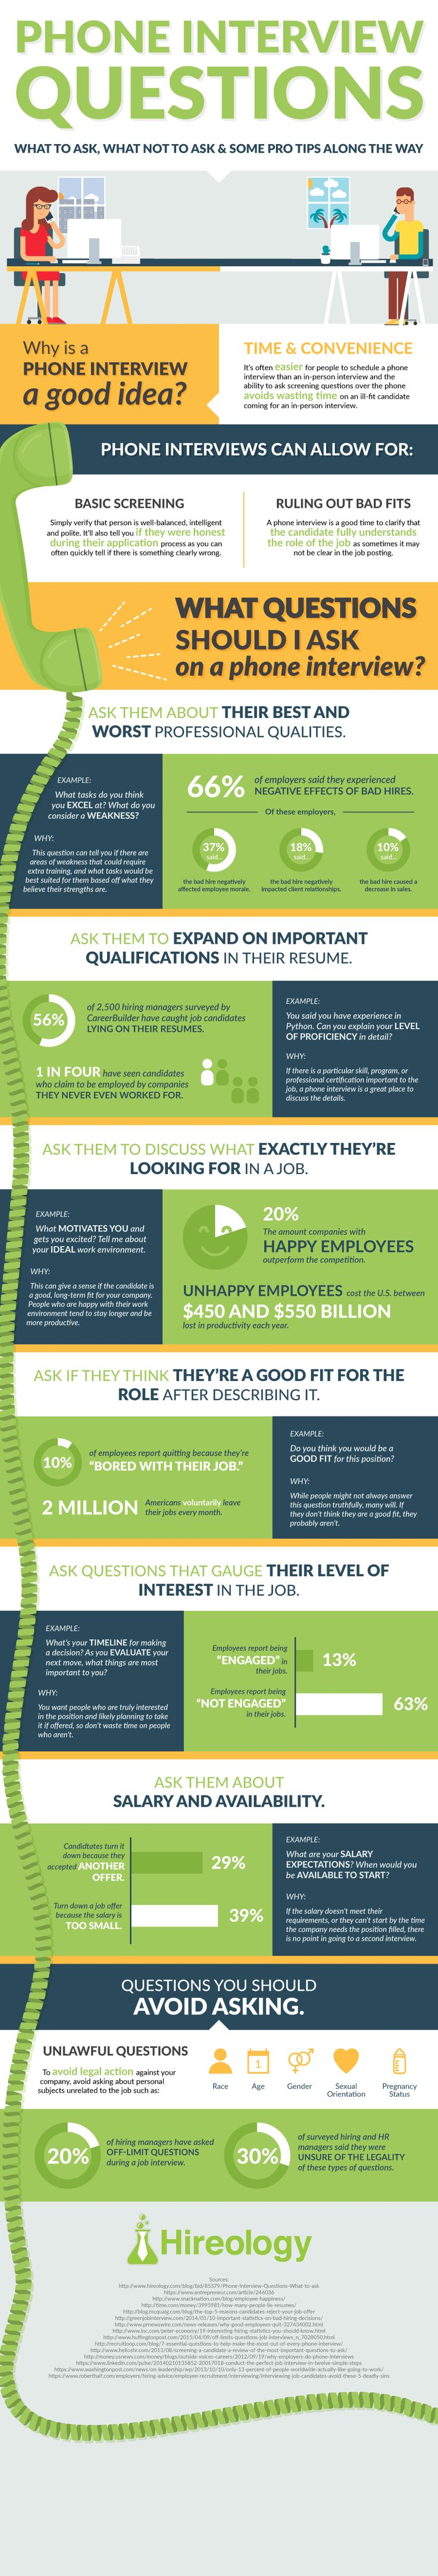 best ideas about top interview questions job the questions you should and definitely shouldn t ask during a phone interview infographic